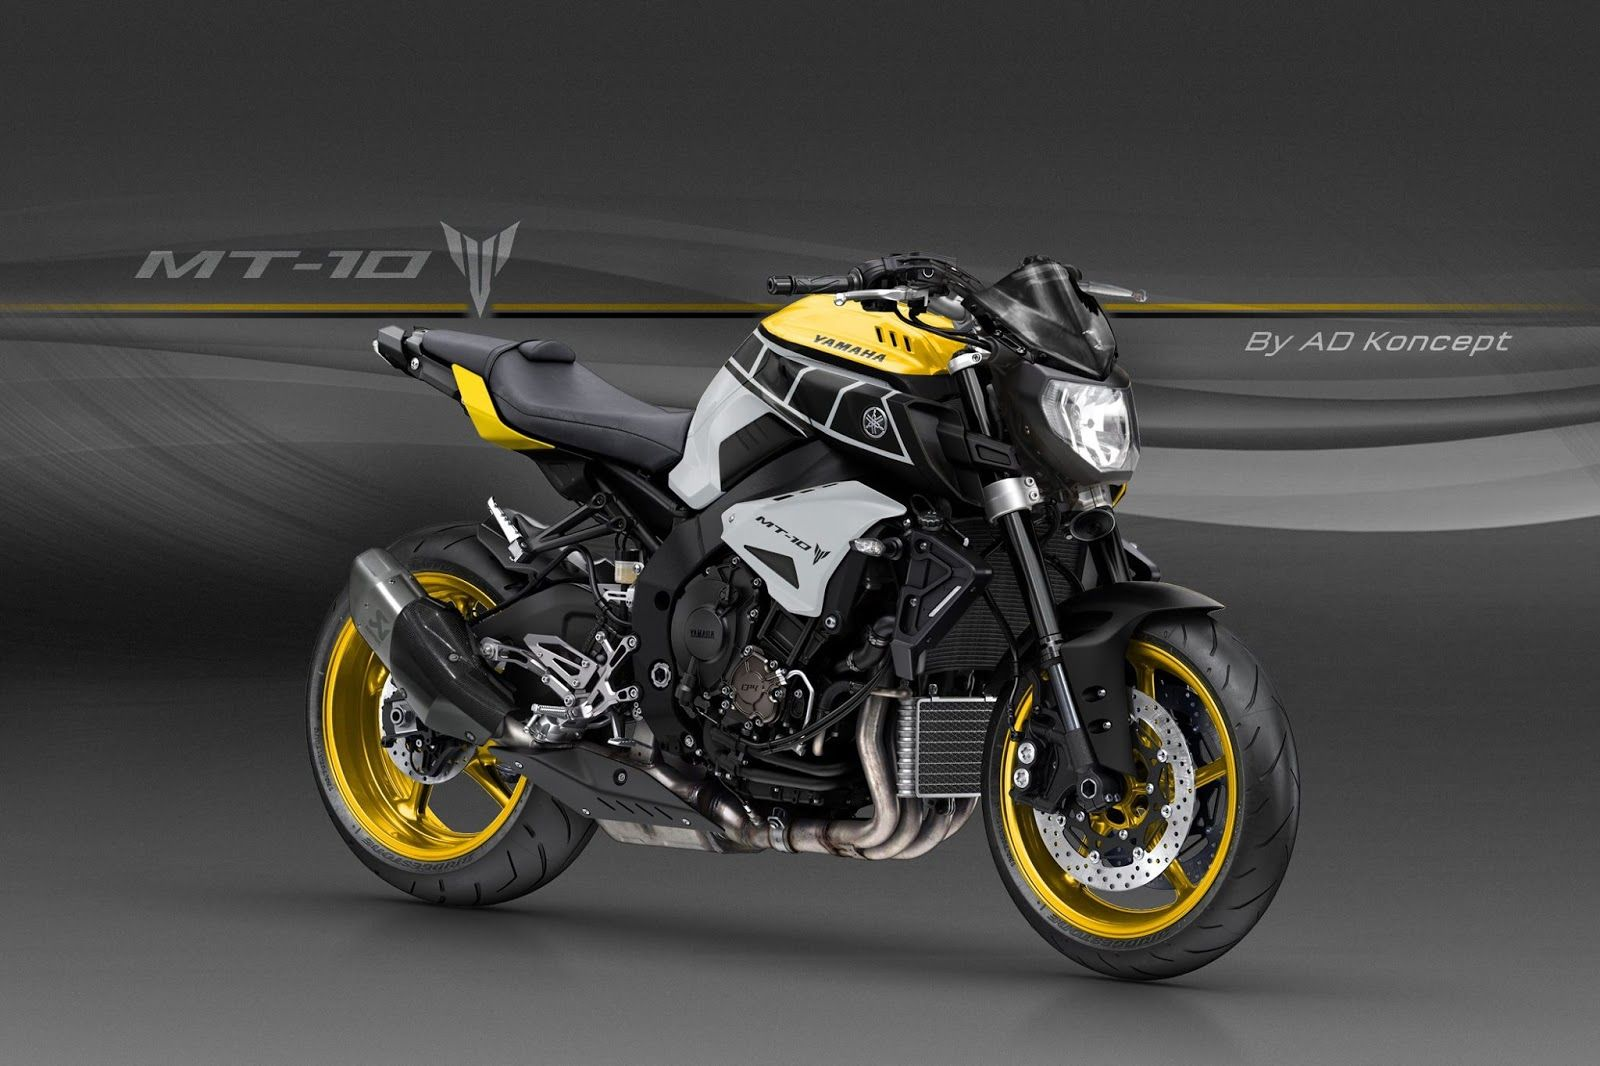 Racing caf design corner yamaha mt 10 by ad koncept motorcyles pinterest yamaha motorbikes and sportbikes